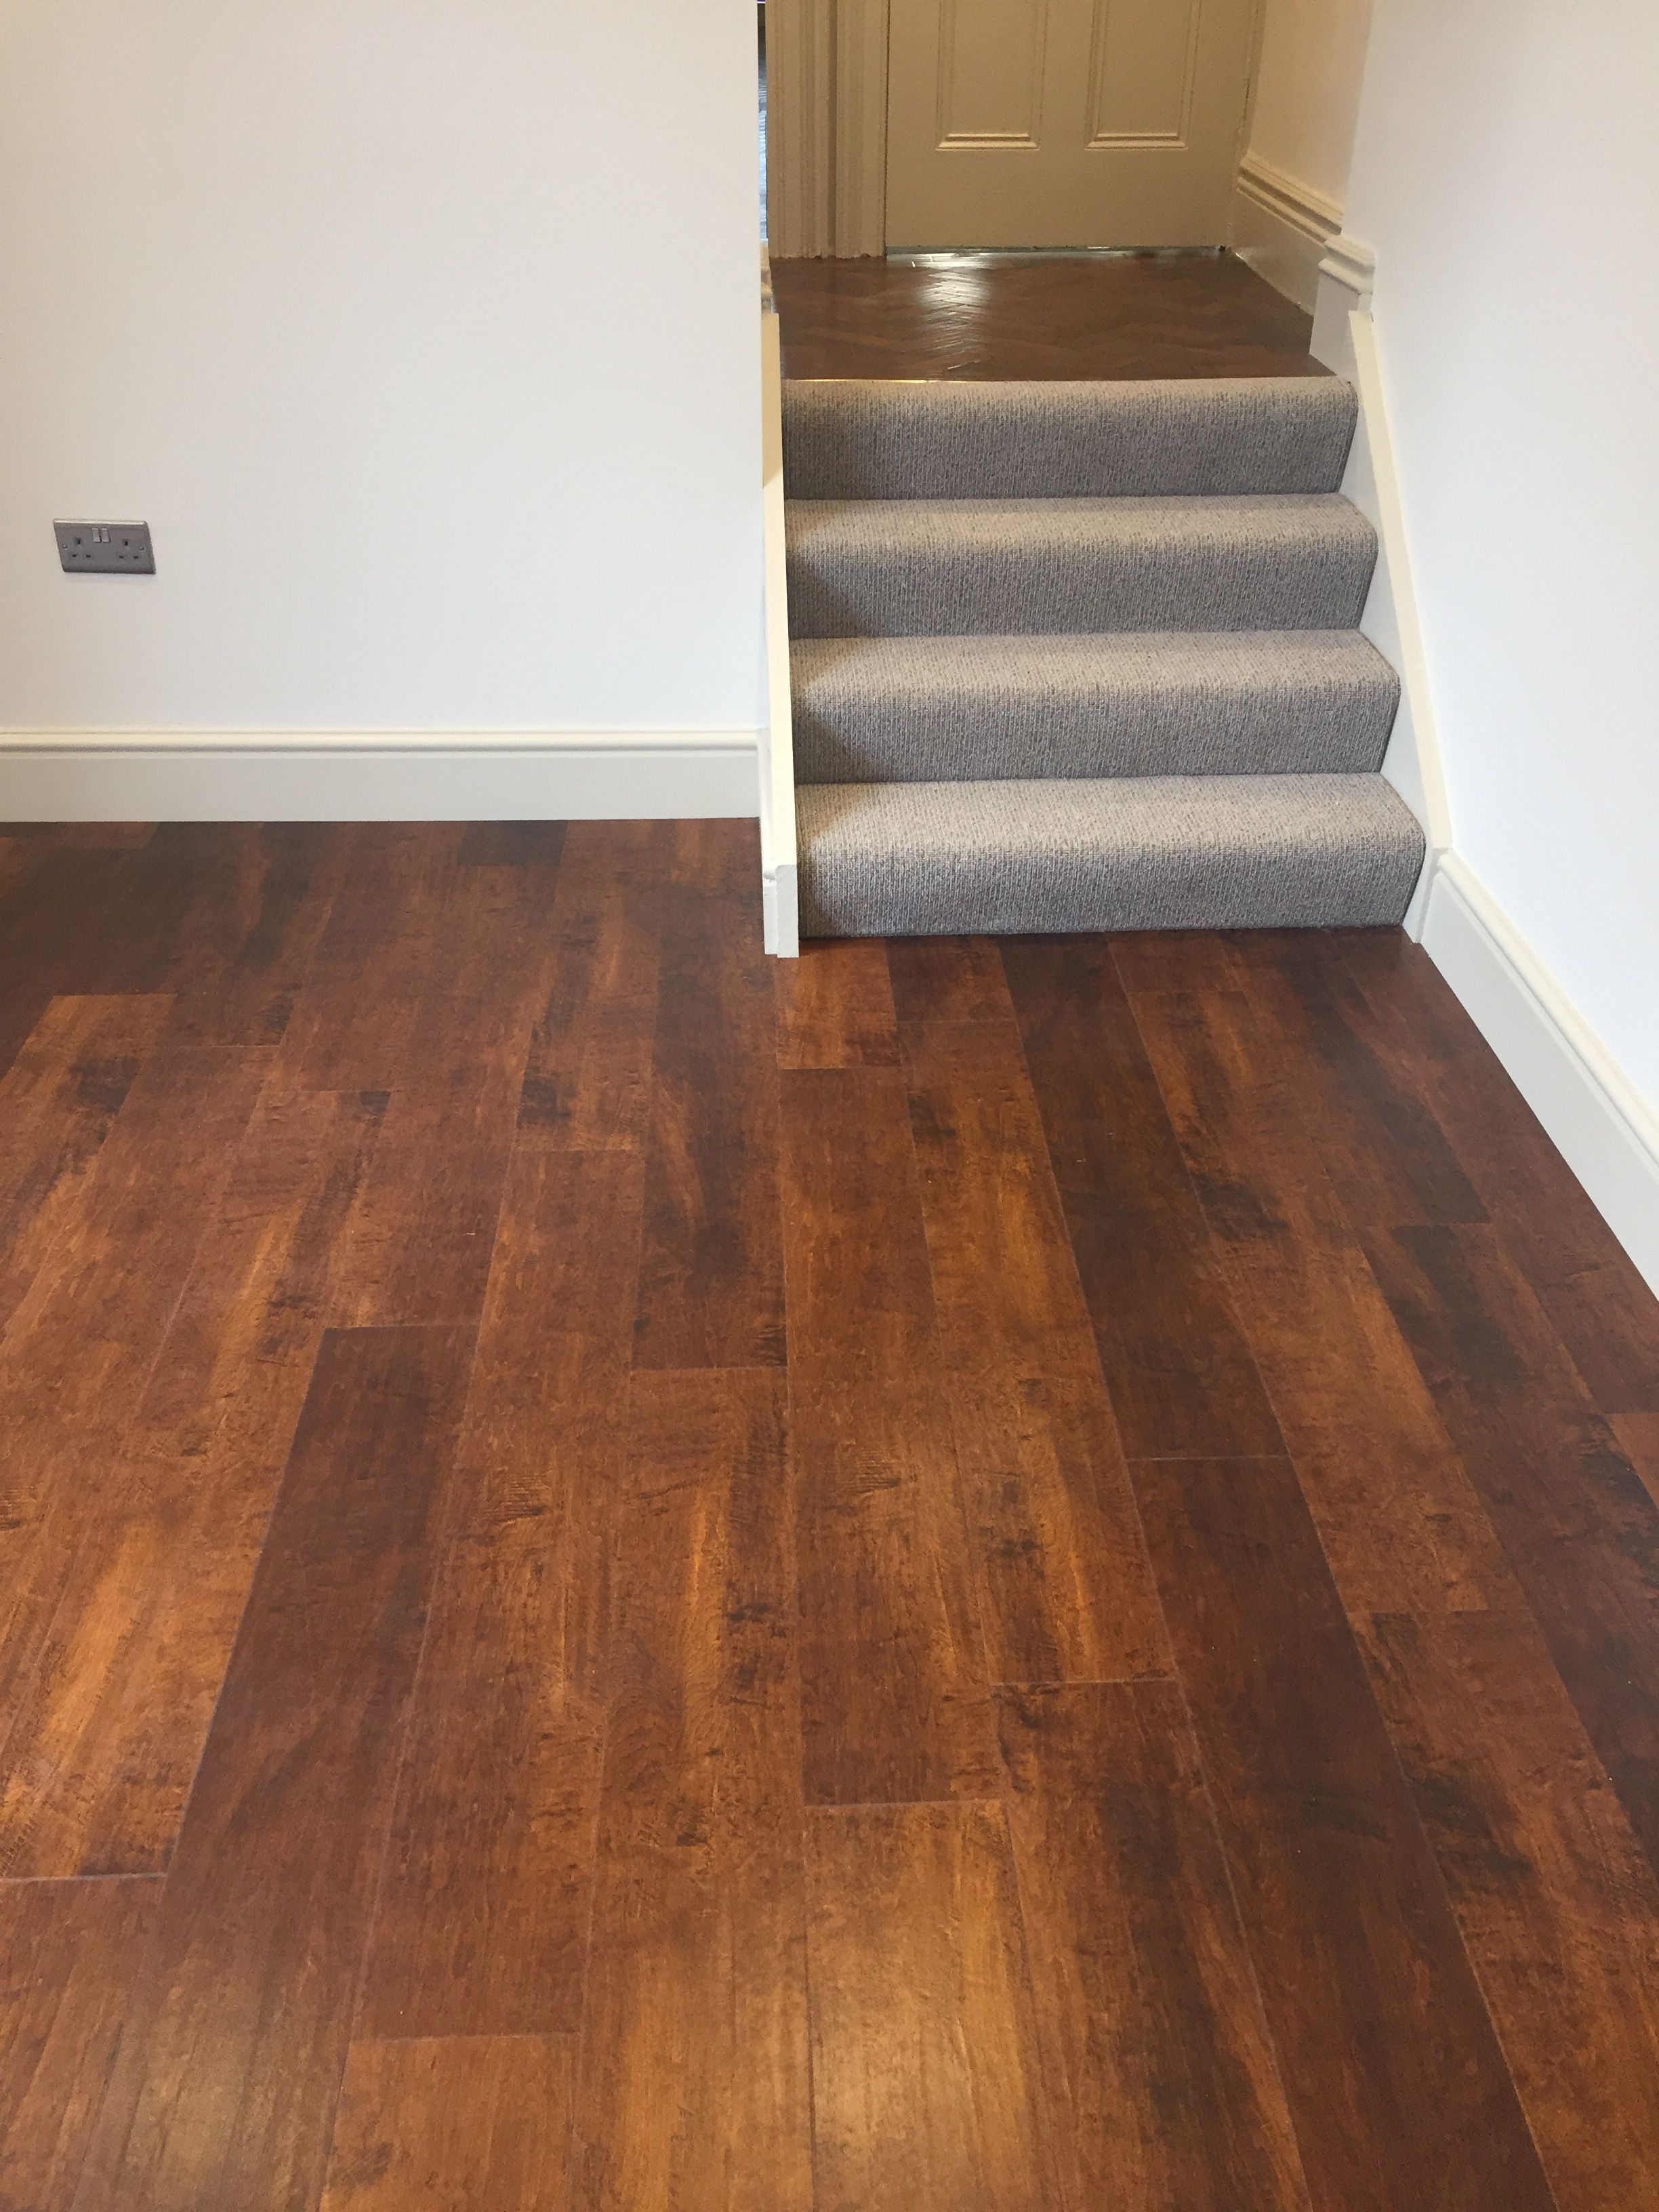 worcestershire multi april en ls for room karndean floors blog our new gb edit navarrachalk flooring hope sensory newhopecorridor s charity floor